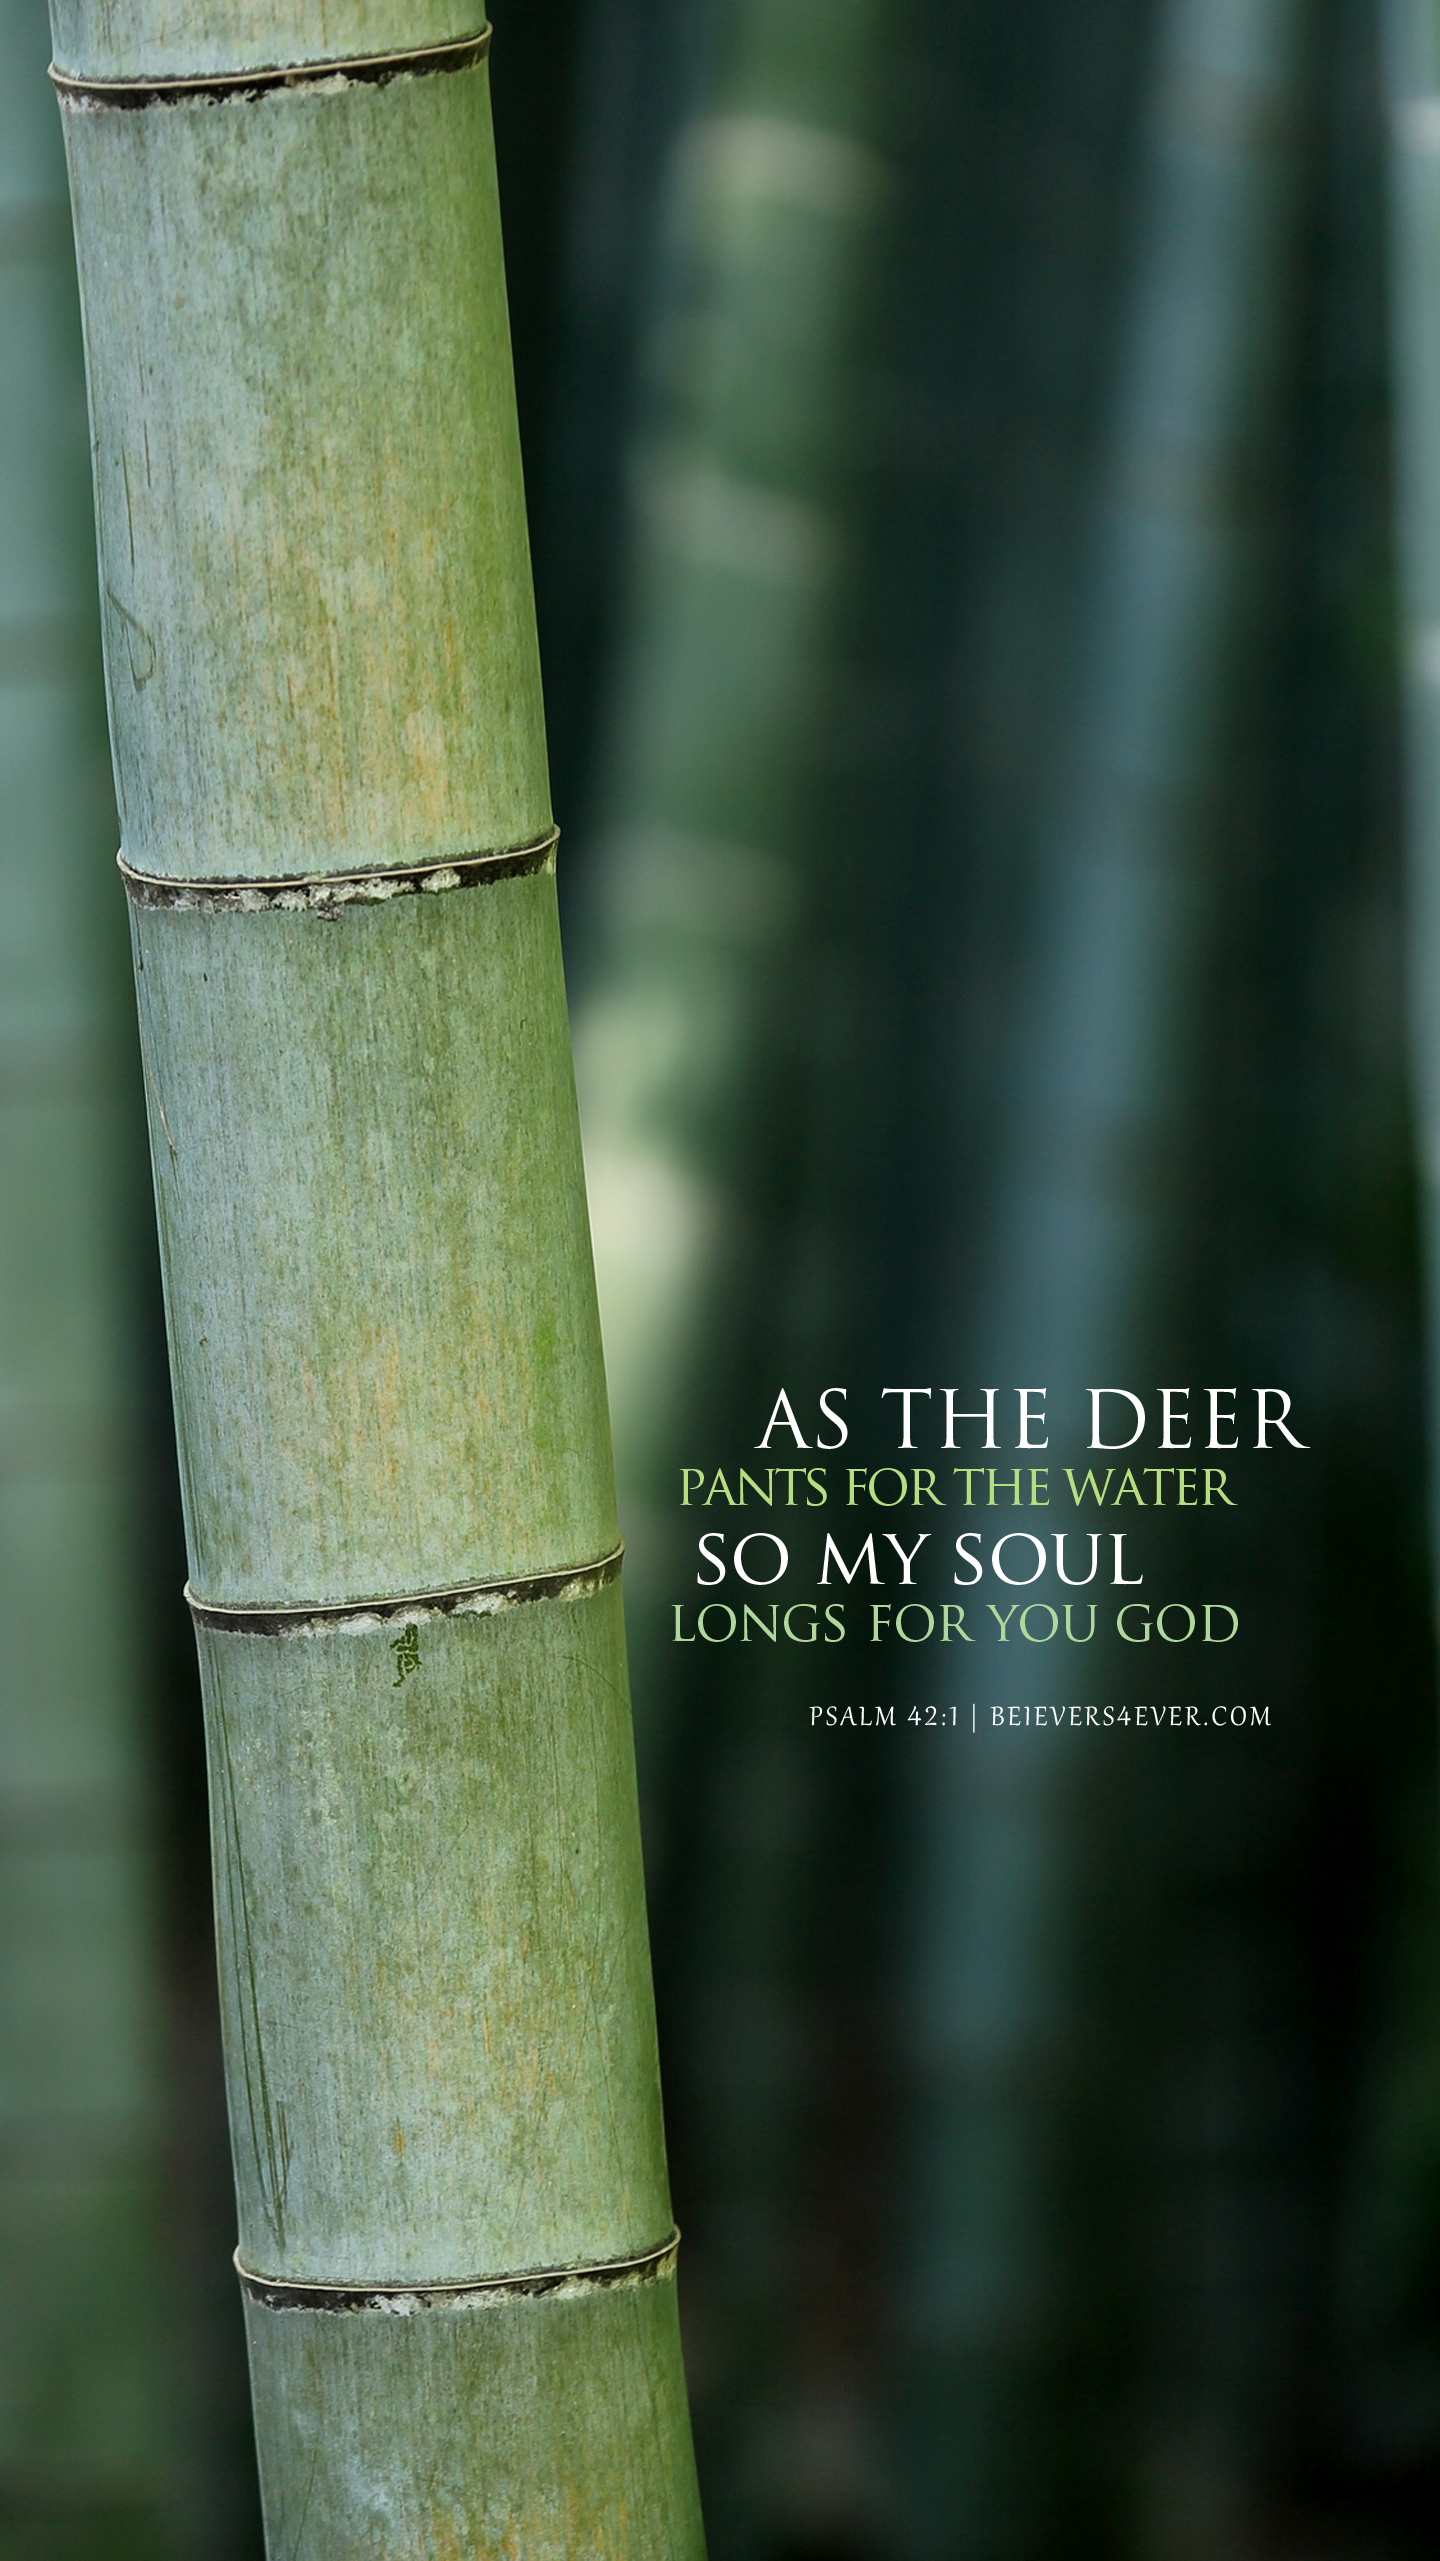 As the deer pants for the water so my soul longs for you God. Psalm 42:1 Free Christian lock screen wallpaper for your mobile device.